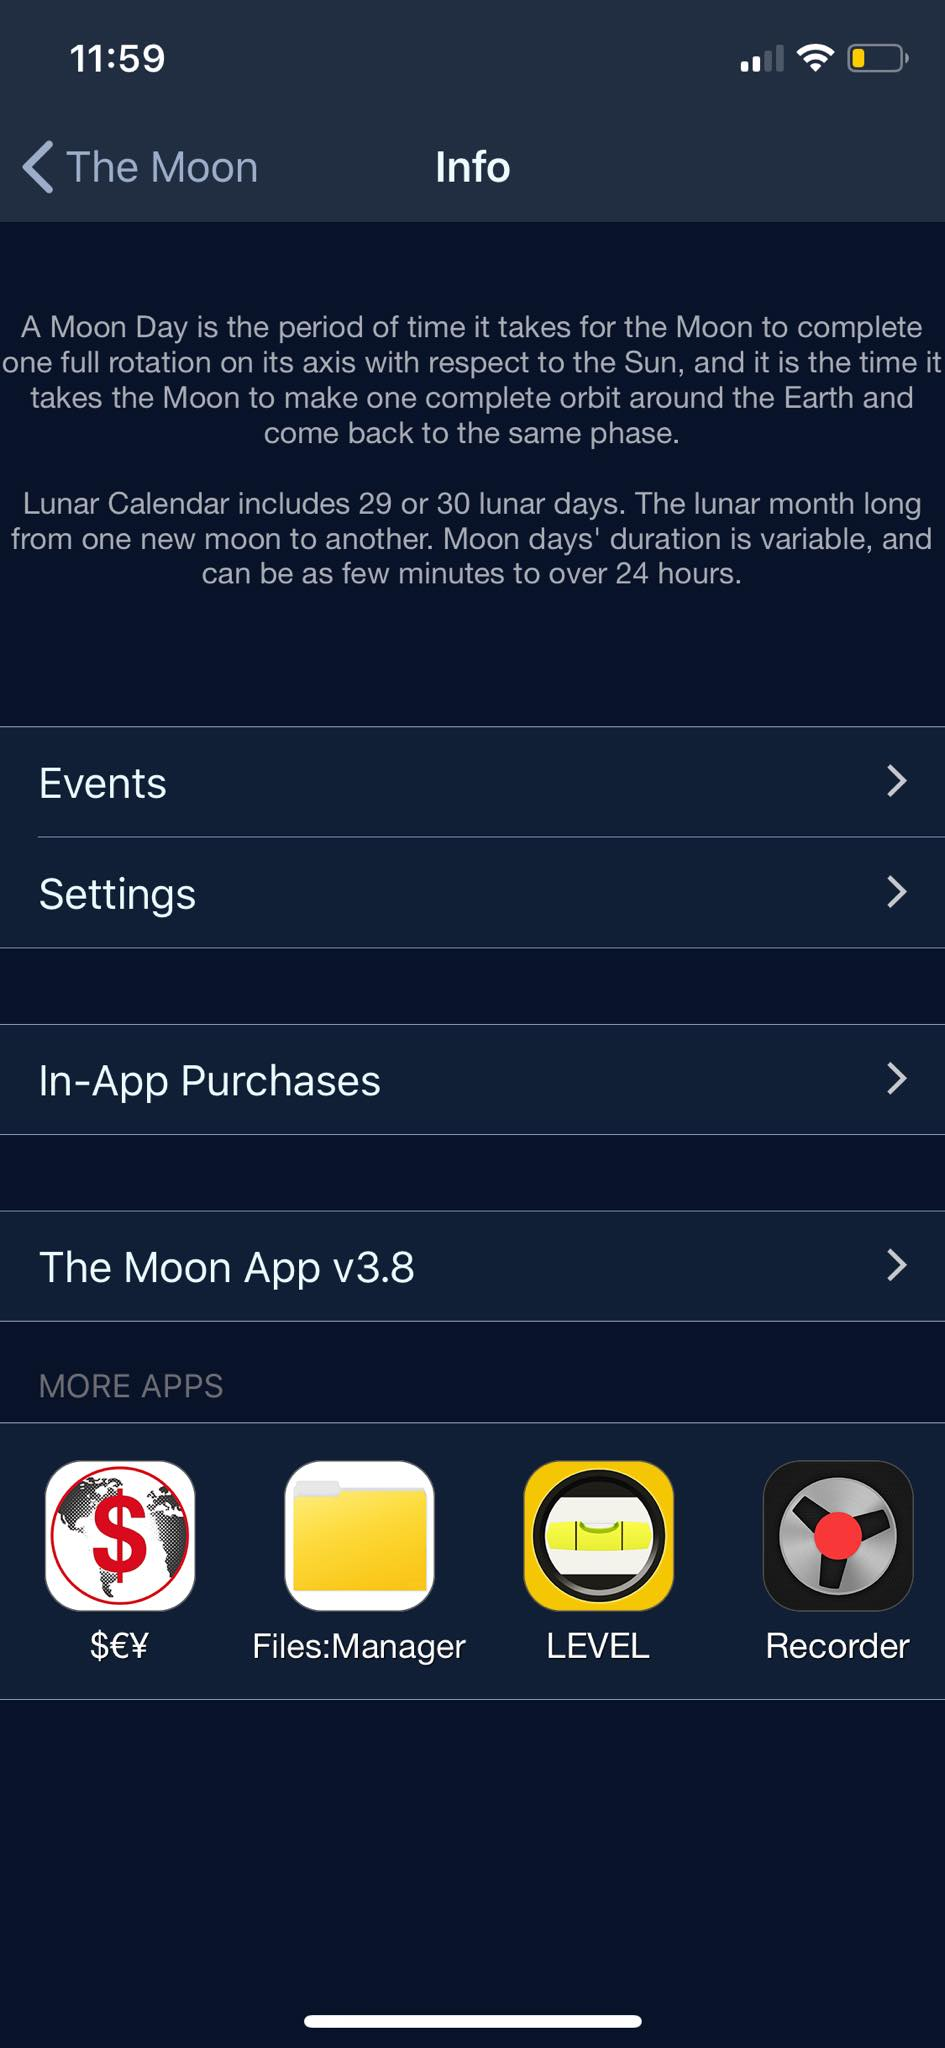 Info on iOS by The Moon from UIGarage